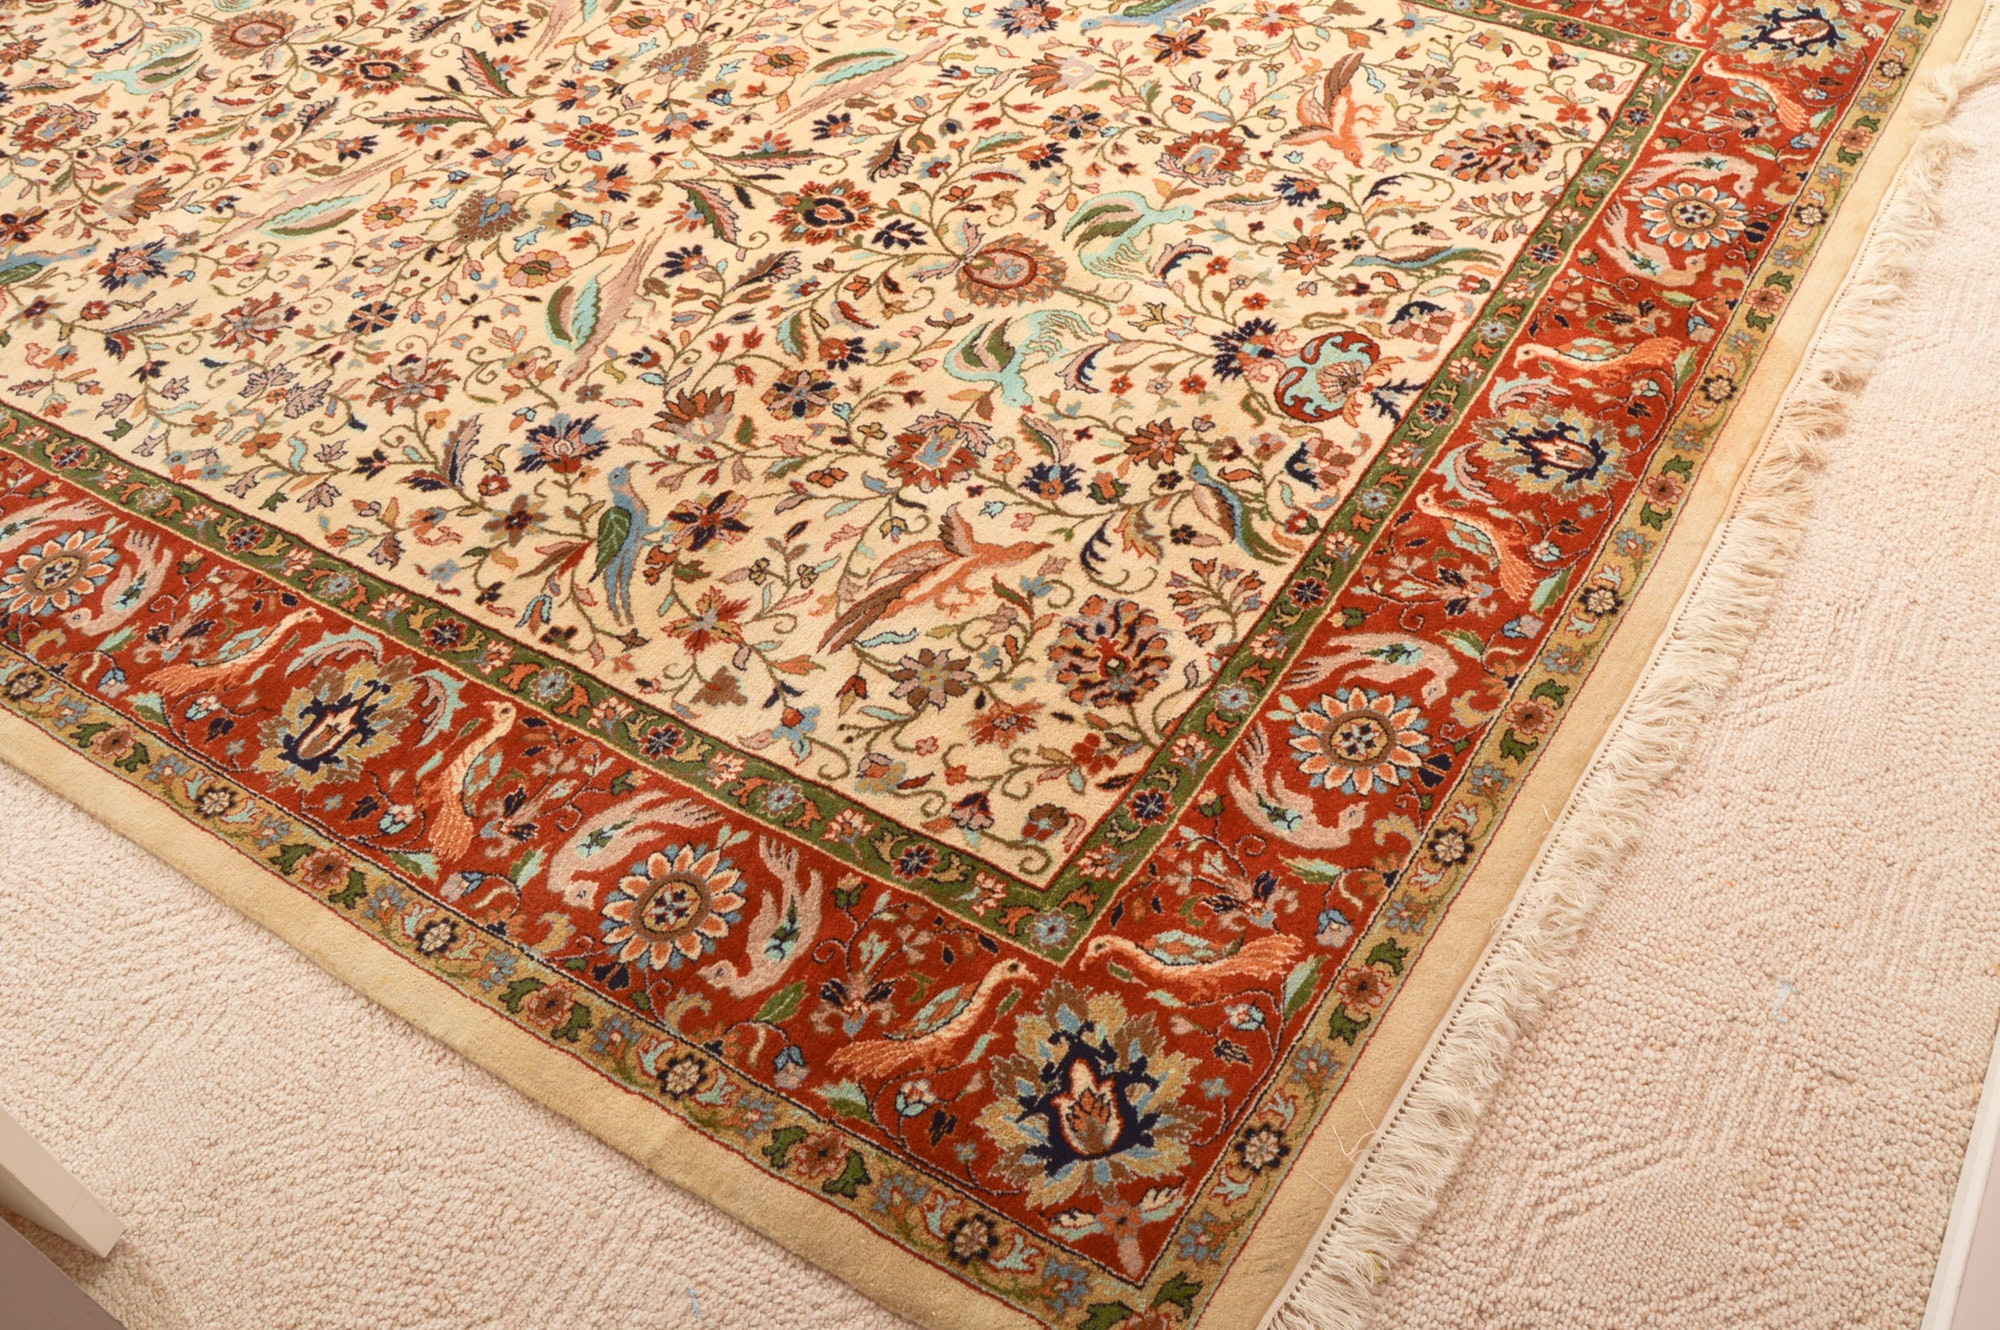 Hand-Knotted Tabriz Area Rug